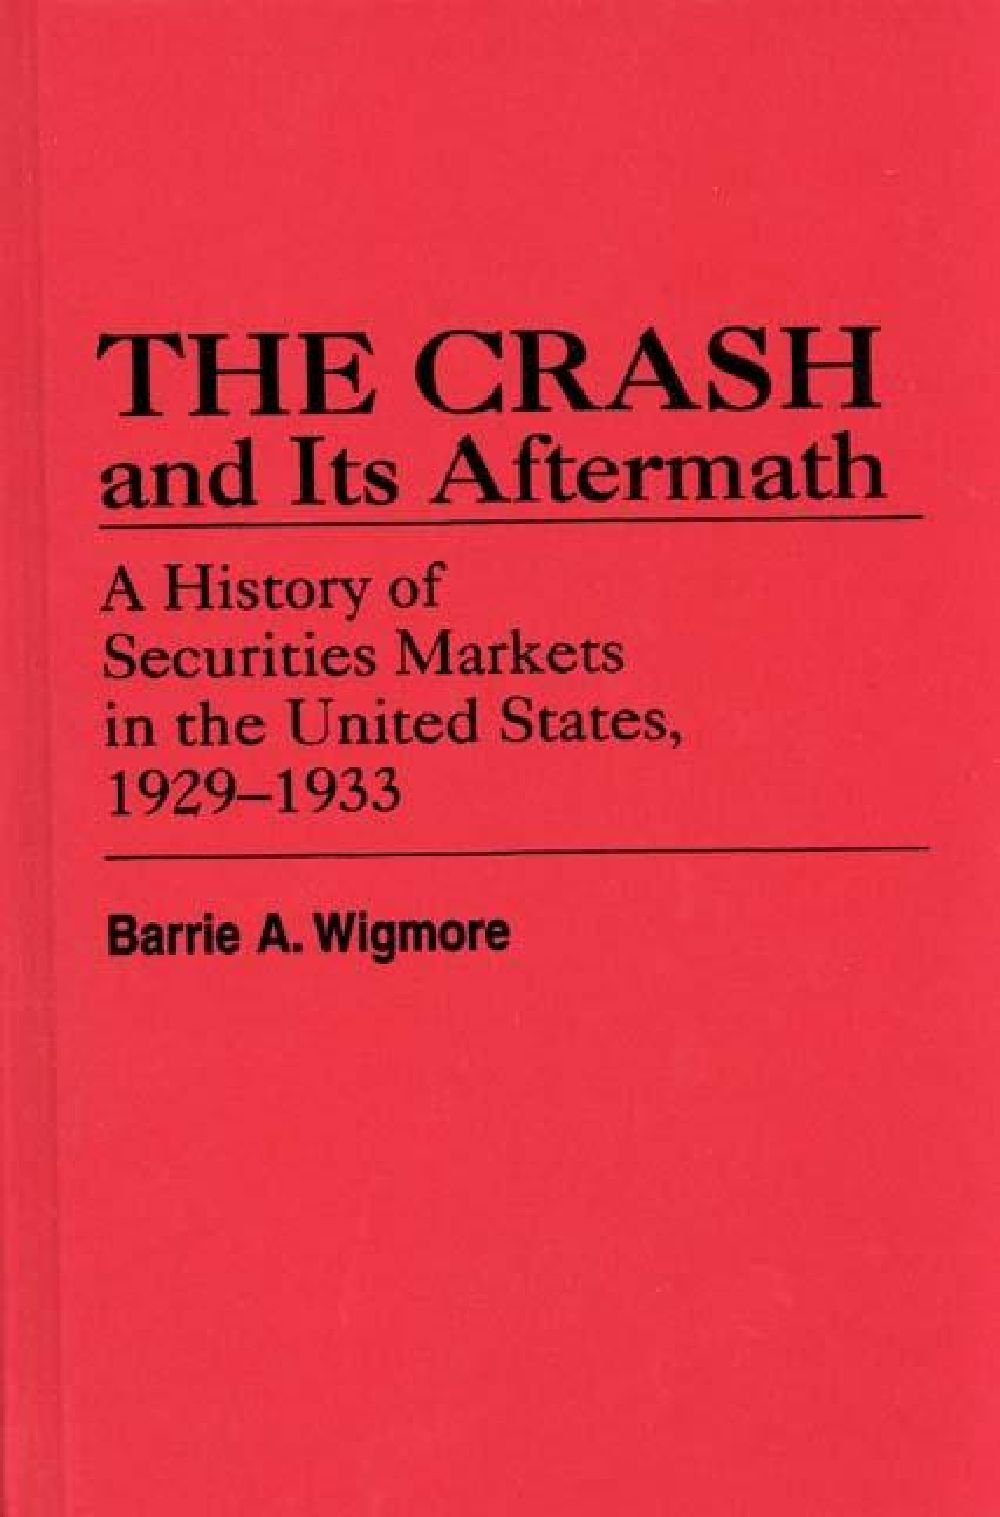 The Crash and Its Aftermath: A History of Securities Markets in the United States, 1929-1933 (Contributions in Economics & Economic History)